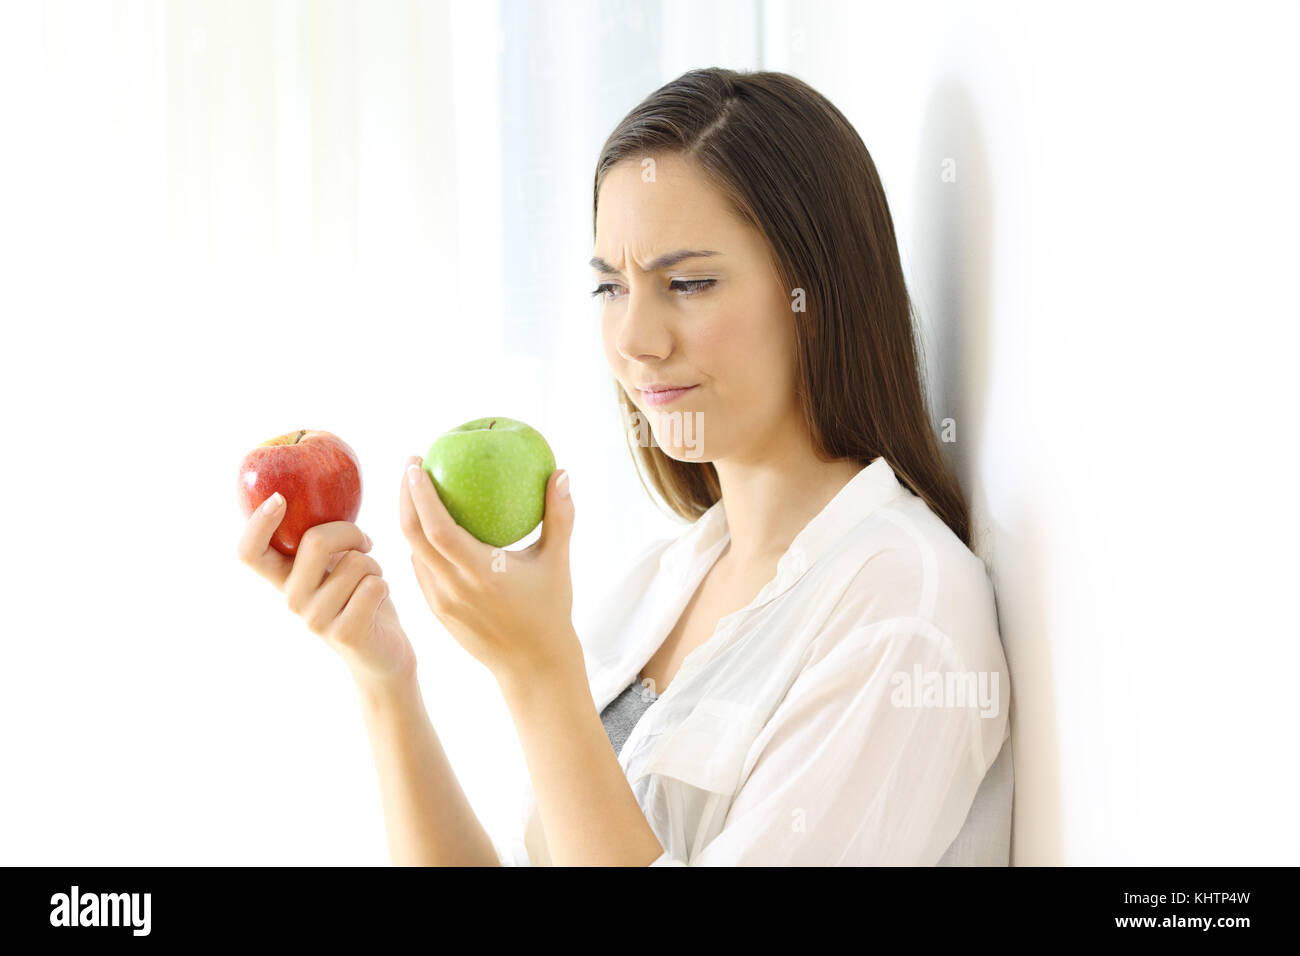 Doubtful woman deciding between red and green apples isolated on white at side - Stock Image